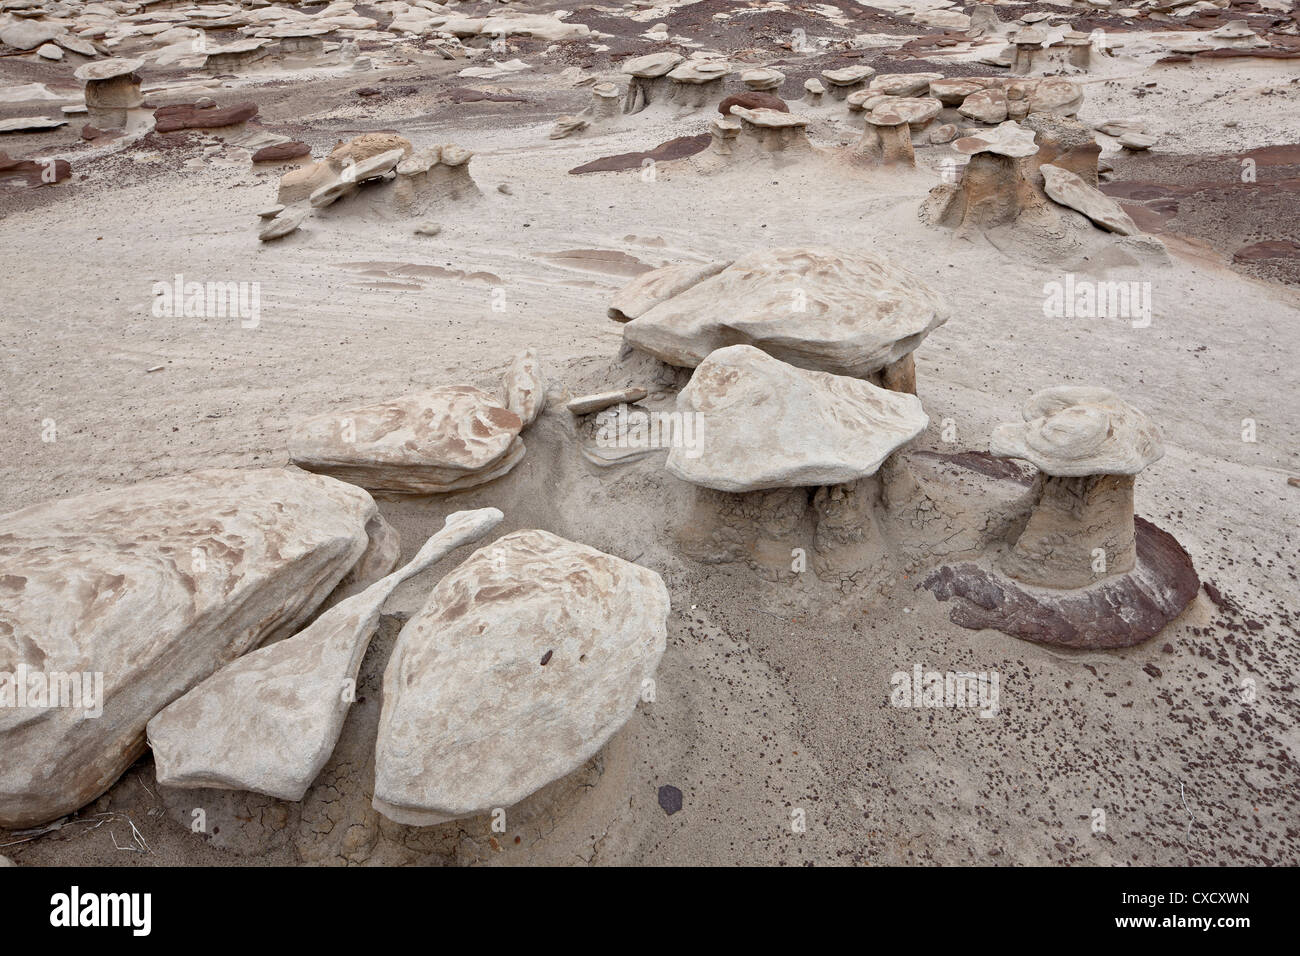 Small mushroom formations in the badlands, Bisti Wilderness, New Mexico, United States of America, North America - Stock Image